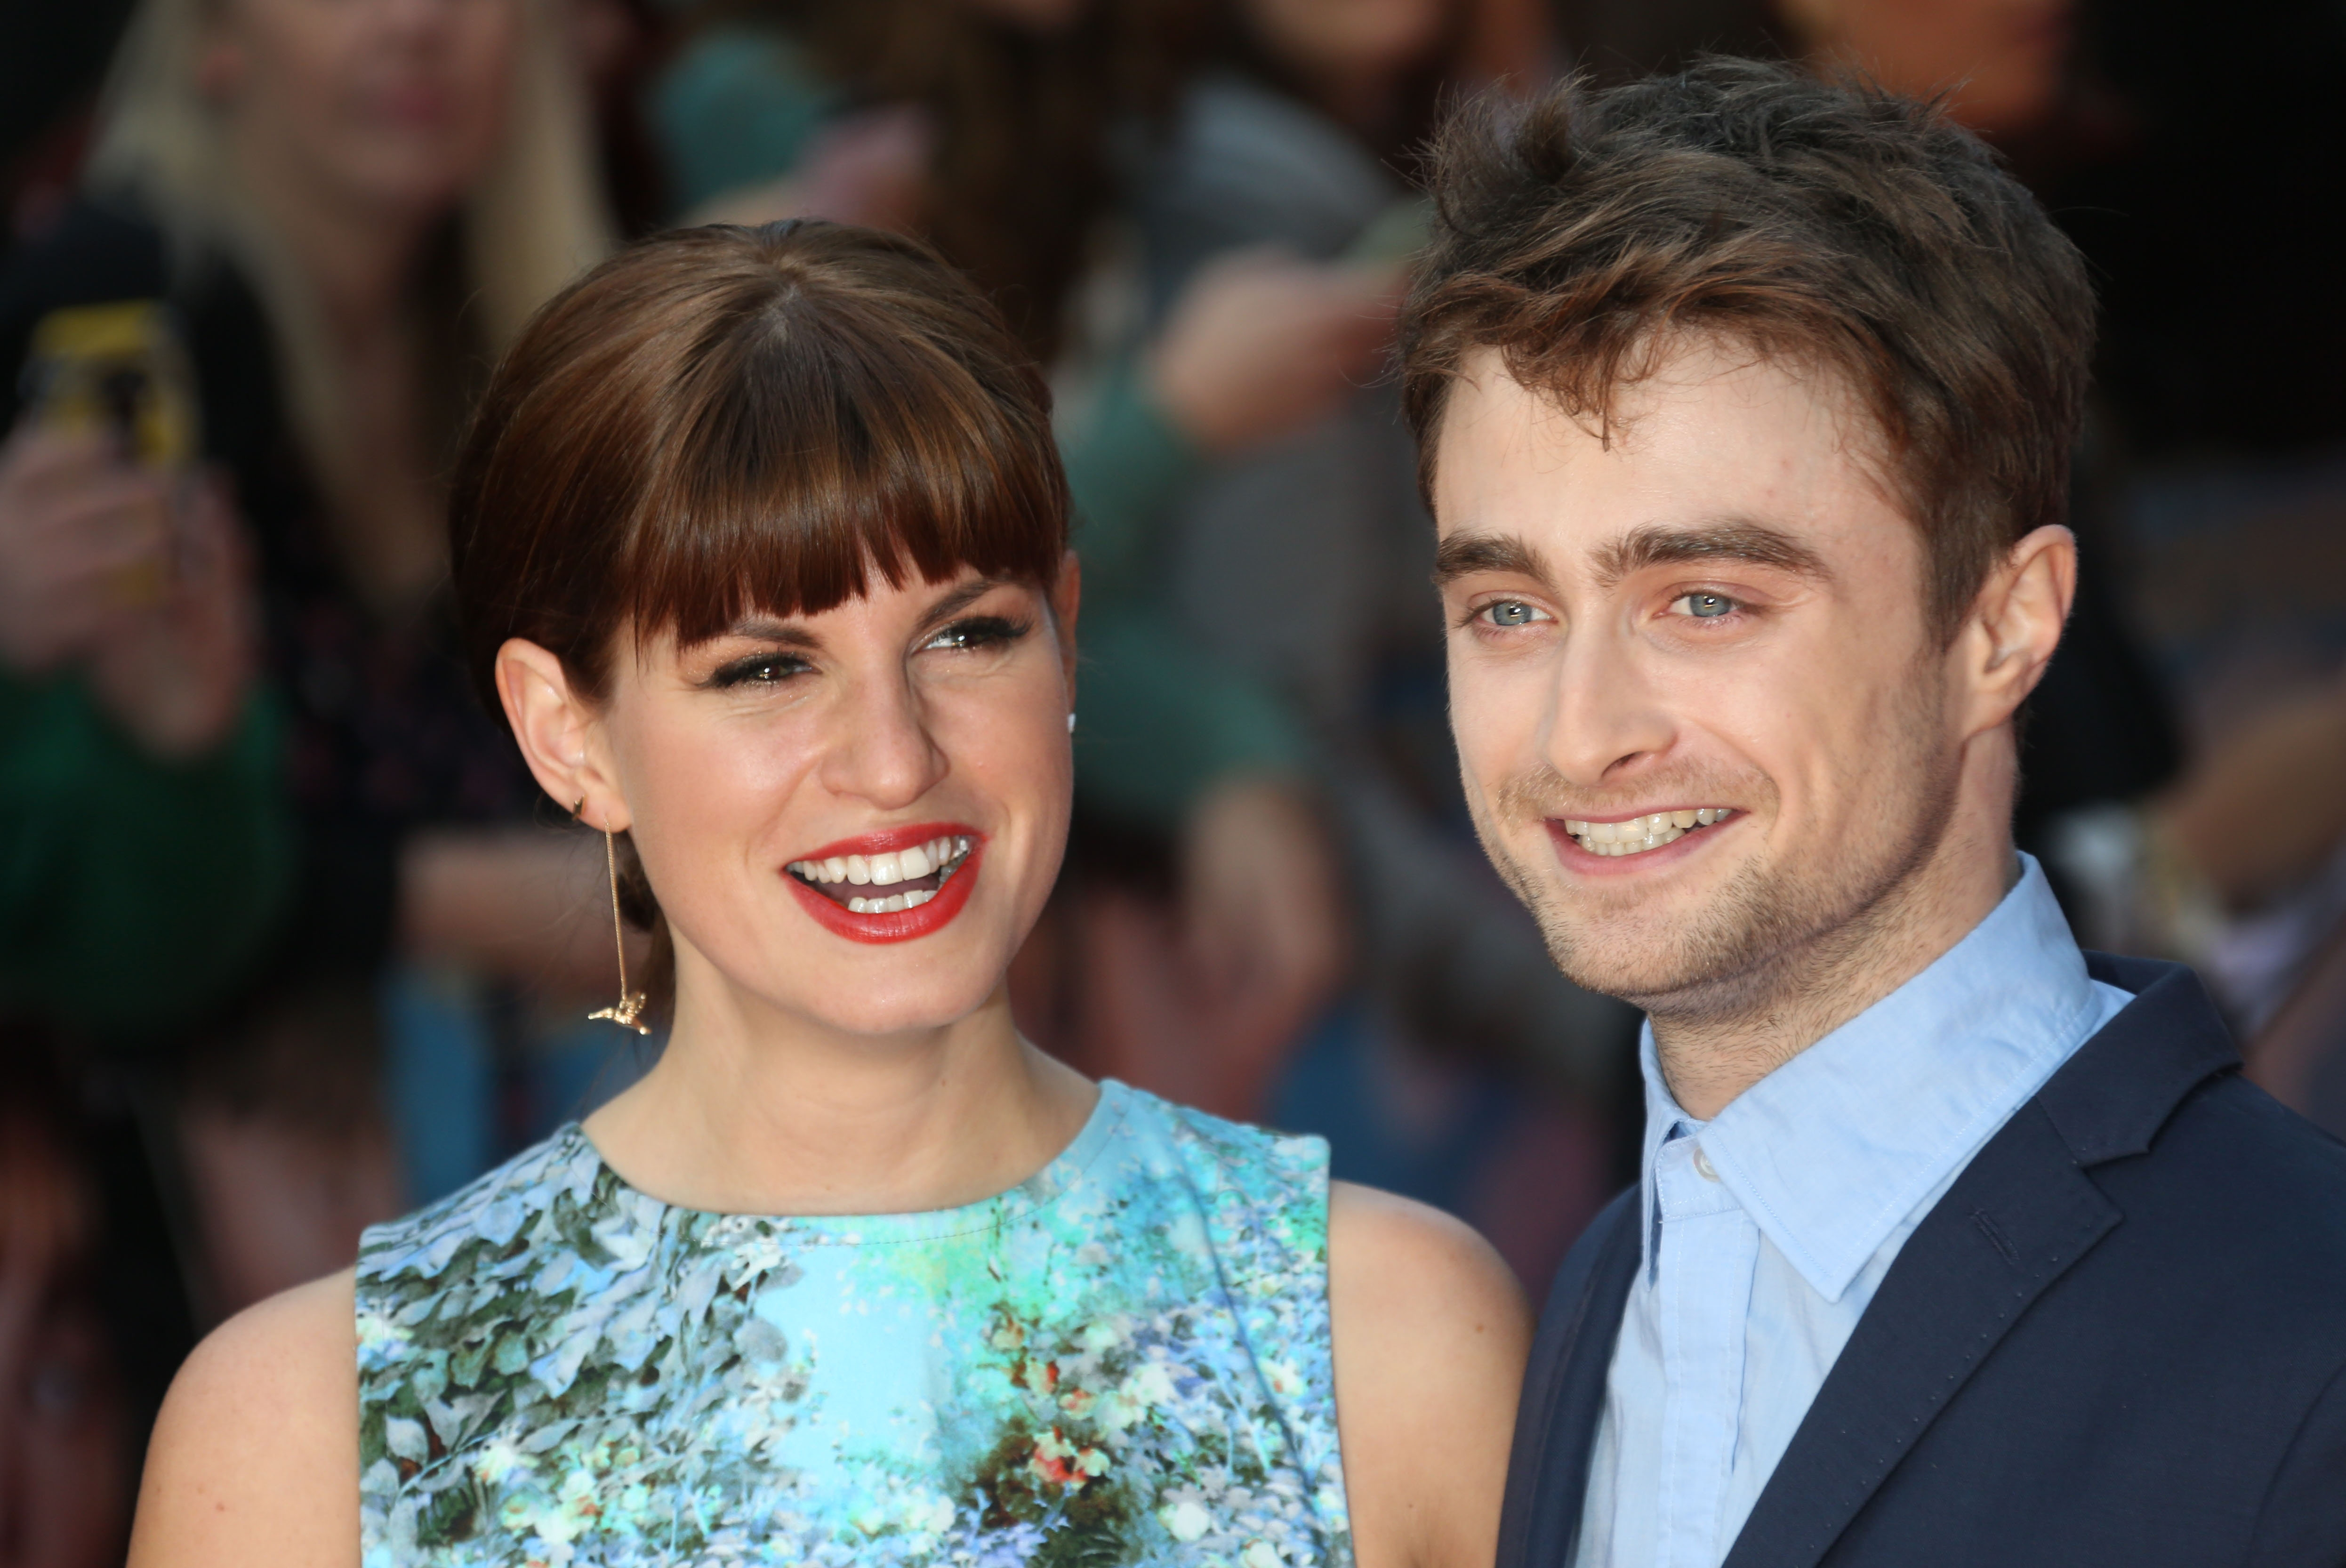 "All smiles on the red carpet: British actors Daniel Radcliffe and Jemima Rooper pose together as they arrive for the U.K. premiere of ""What If"" in London on Tuesday."